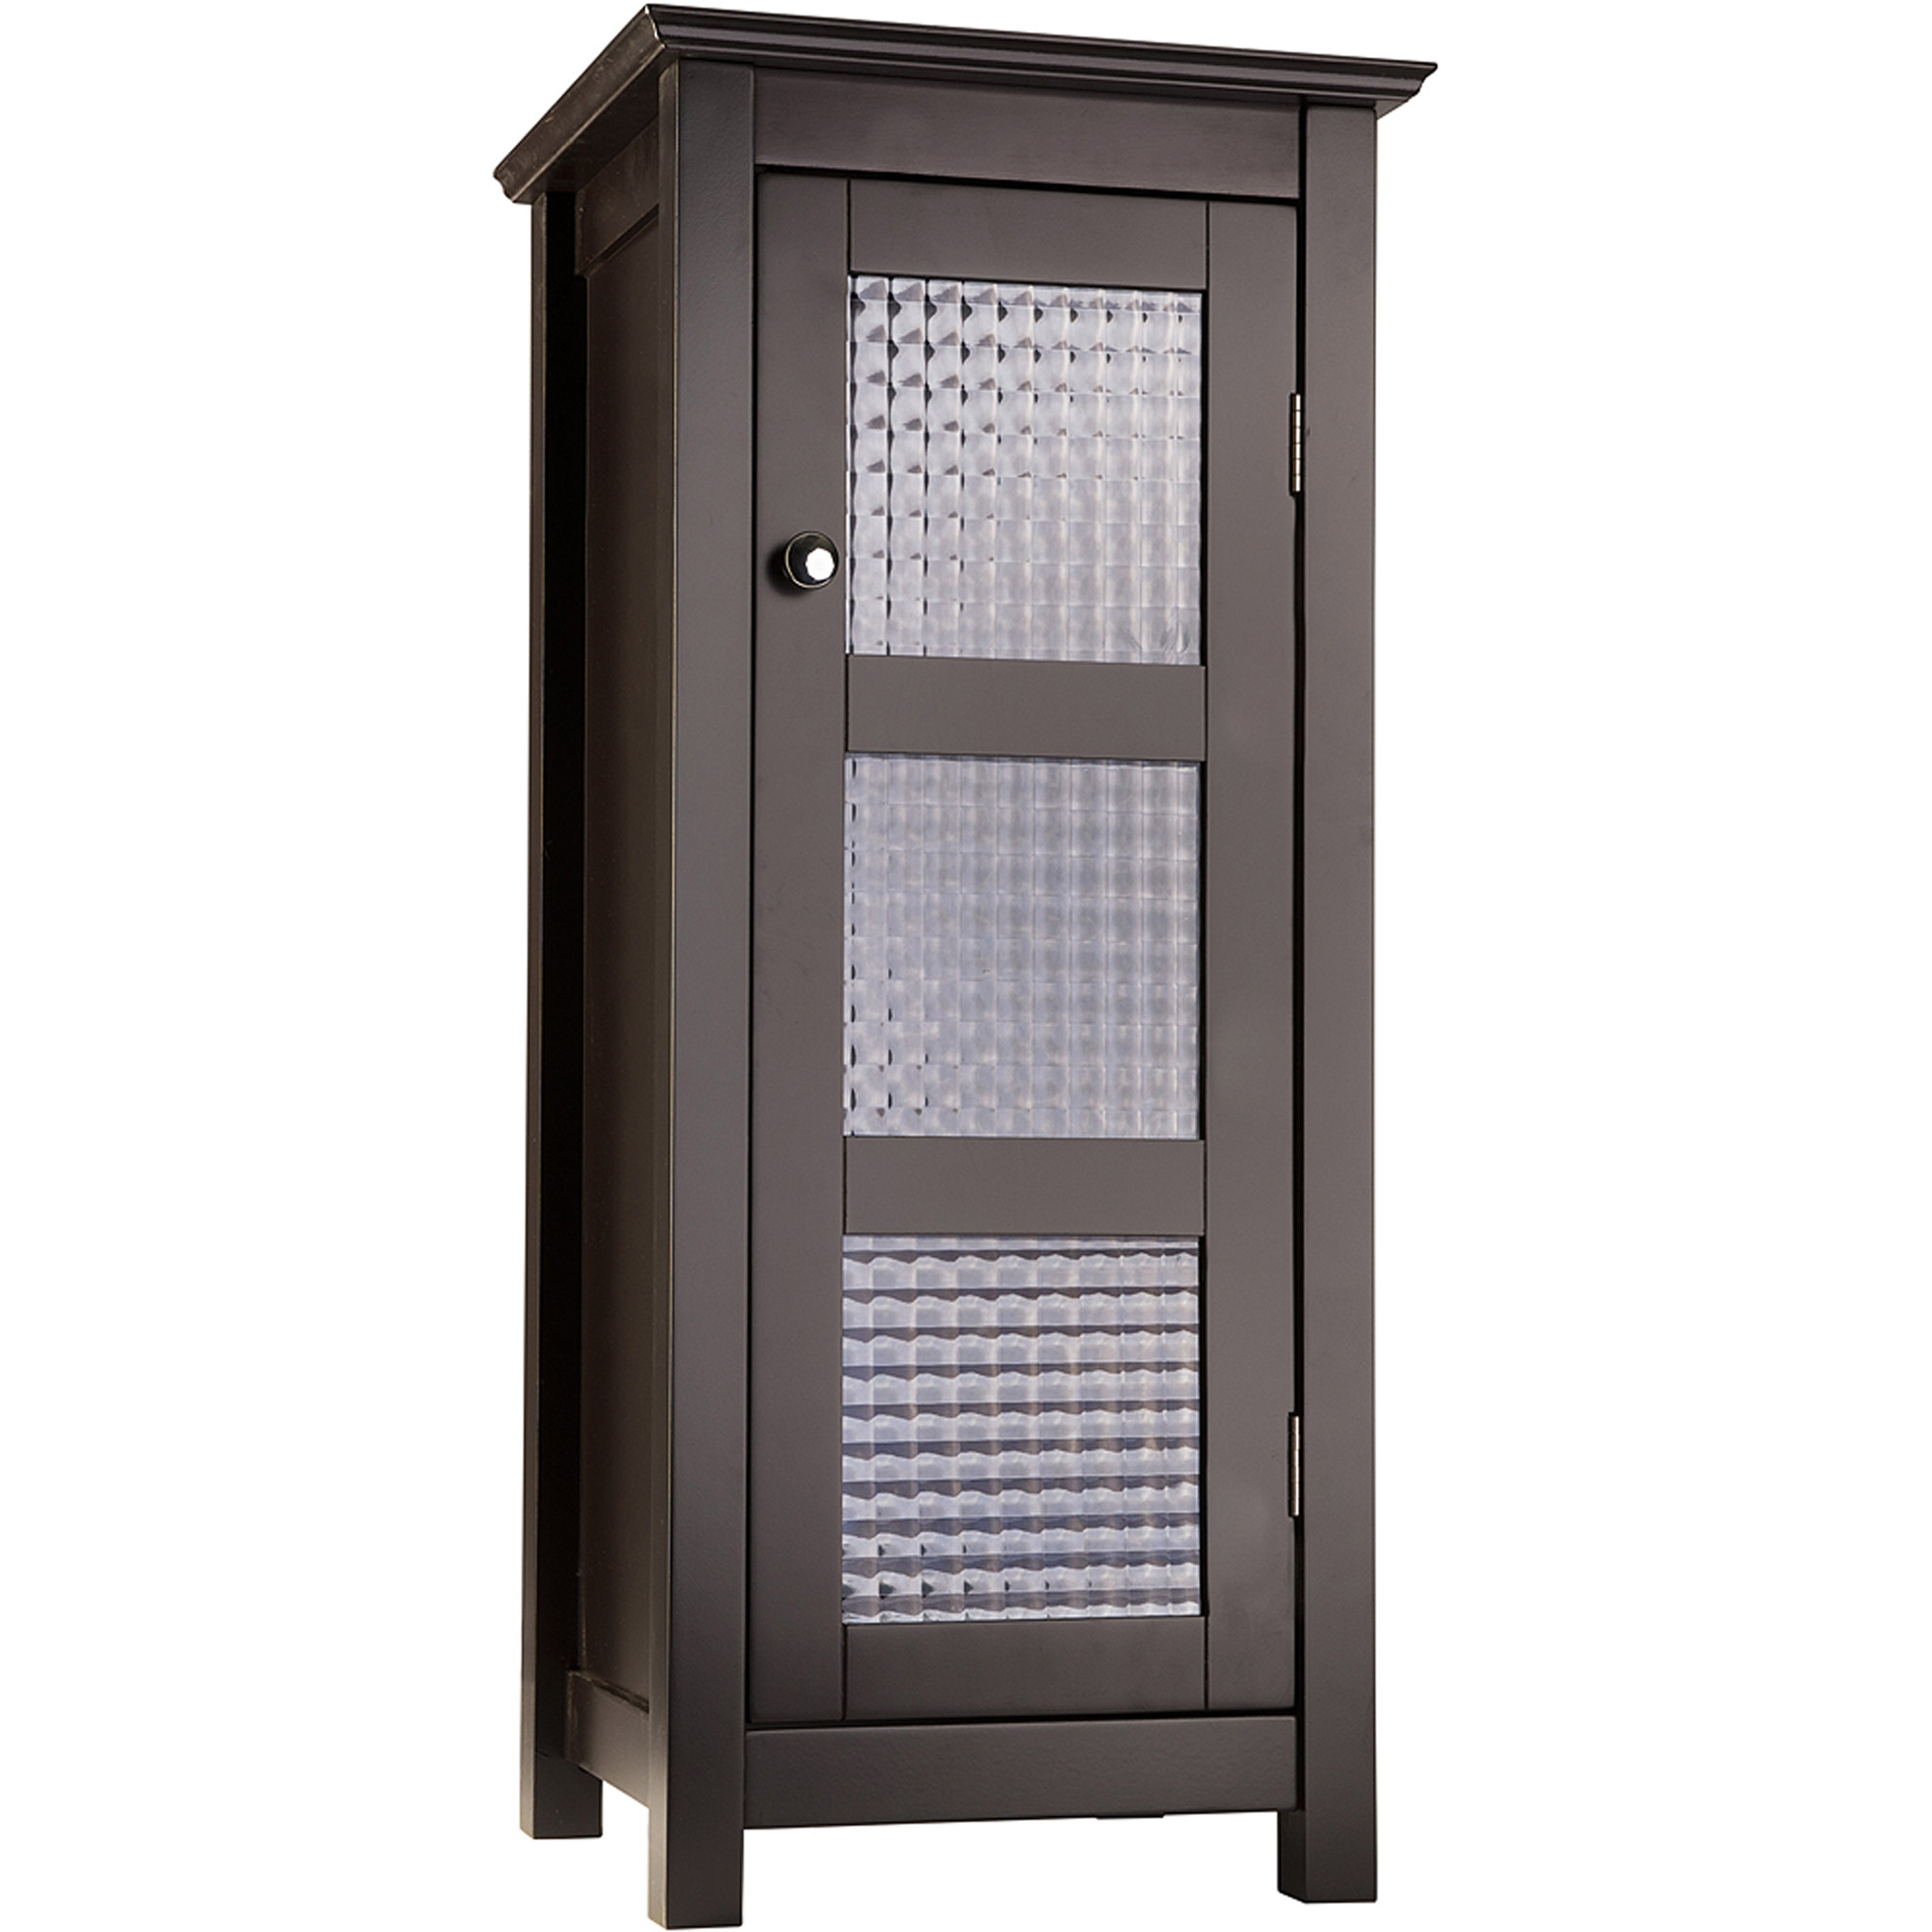 Torino Floor Cabinet With Glass Door Espresso Walmartcom - Espresso bathroom floor cabinet for bathroom decor ideas